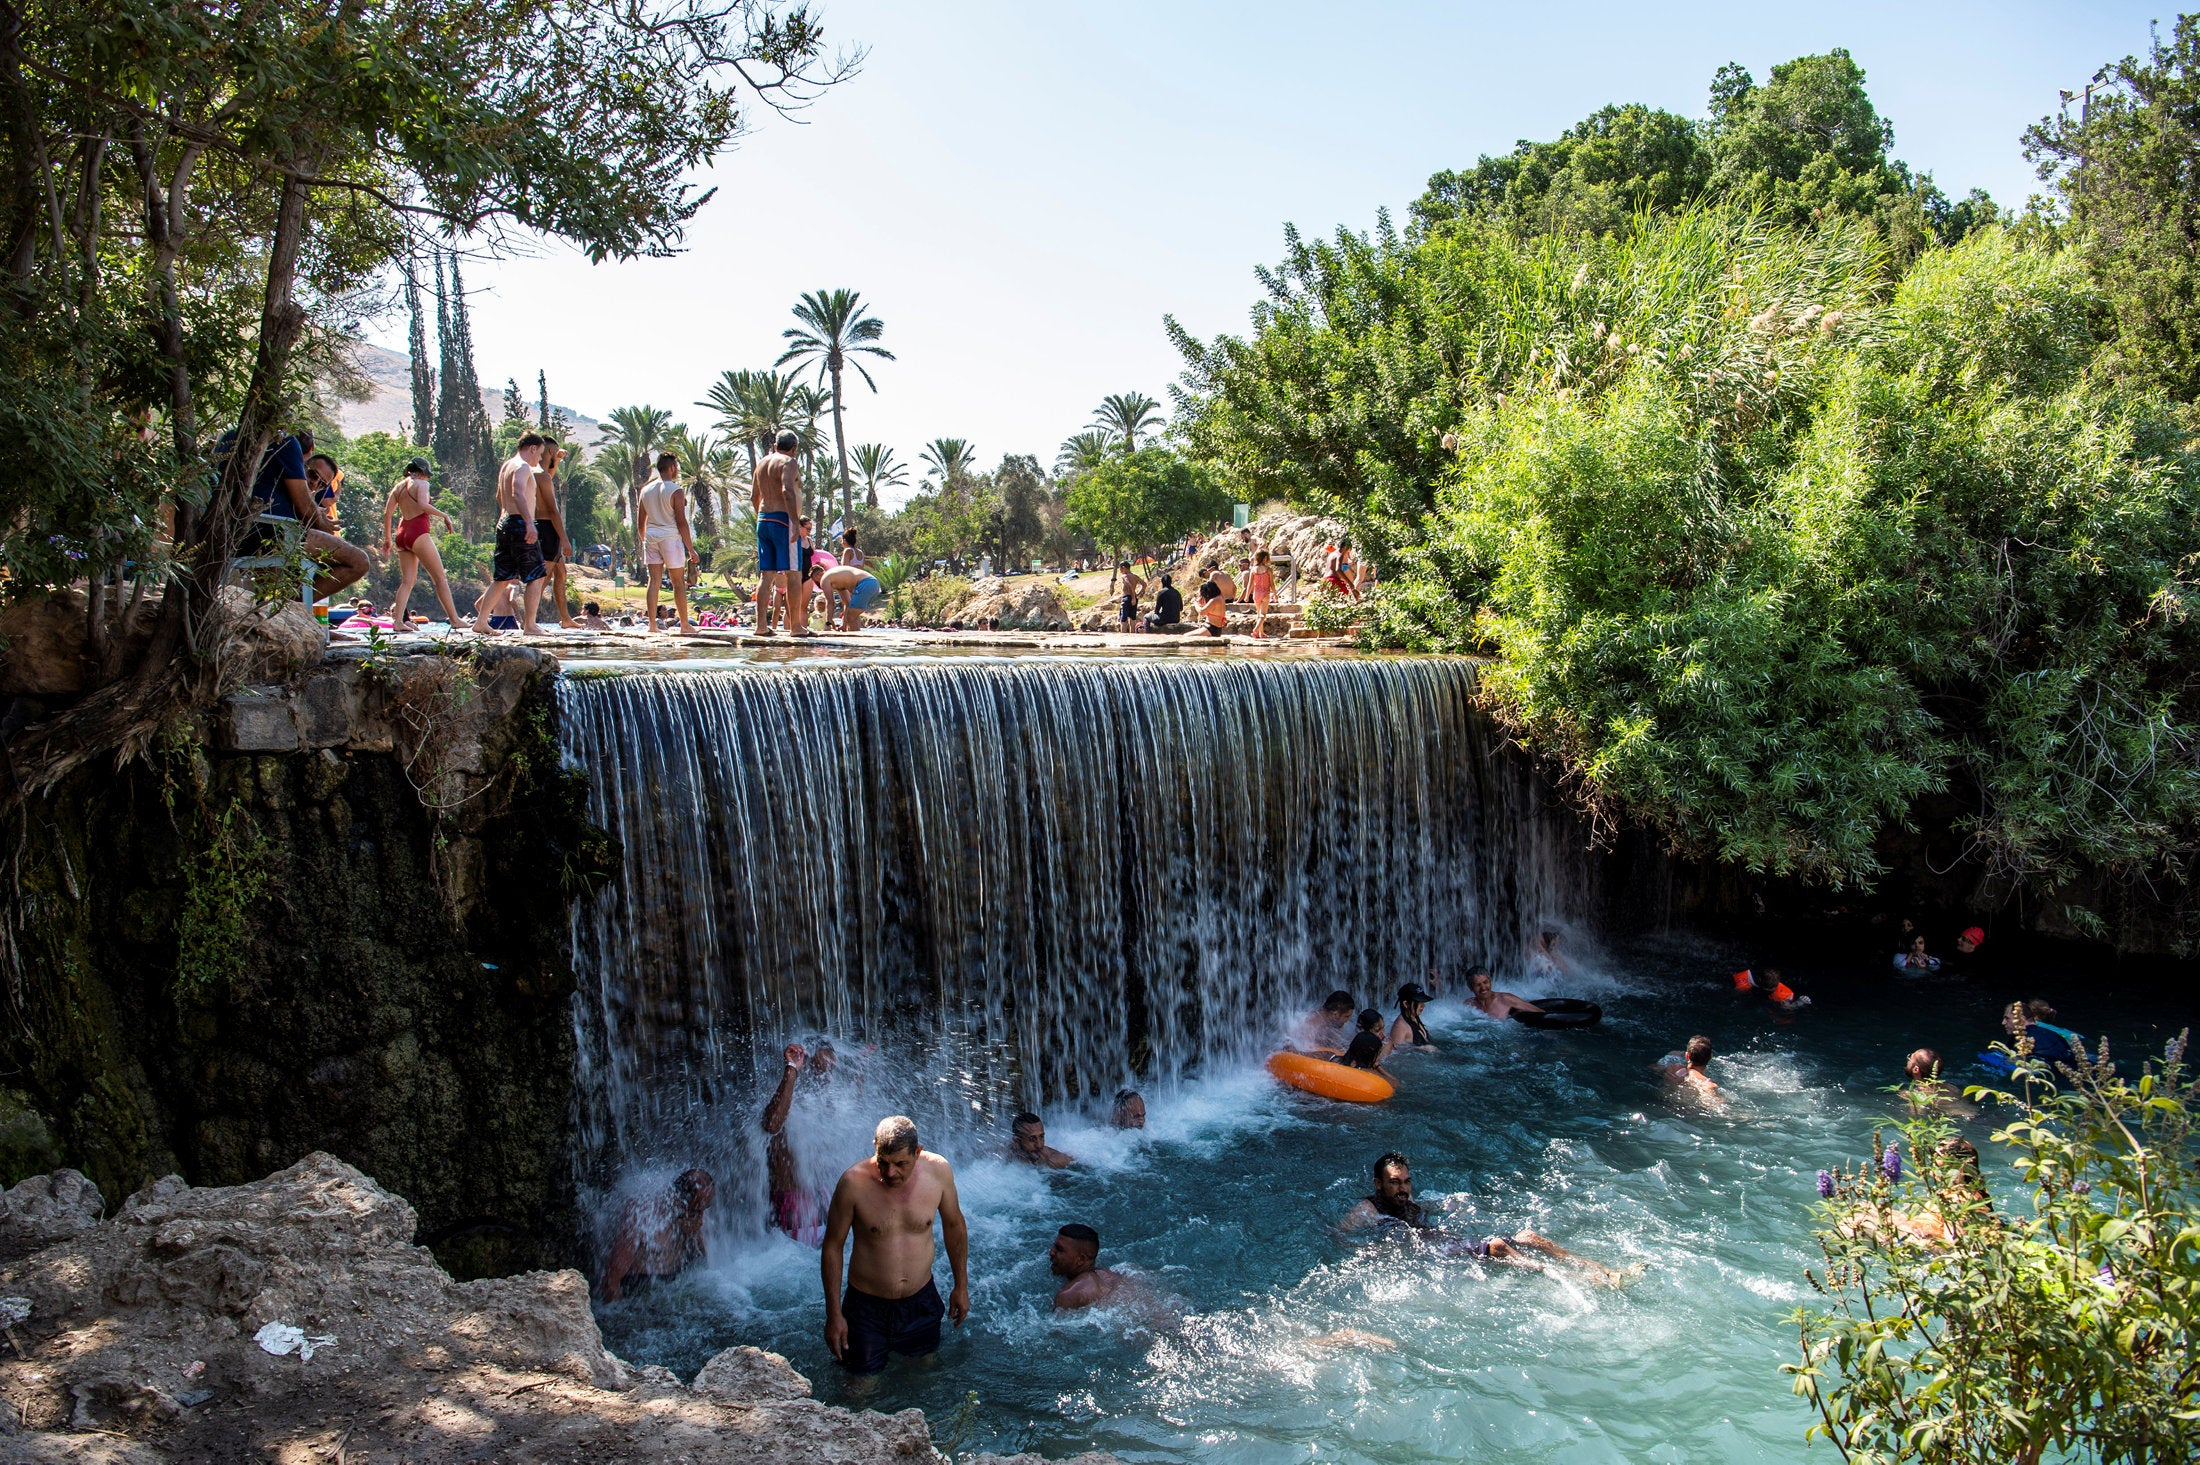 This Israeli park is heaven on Earth. As long as you get out of